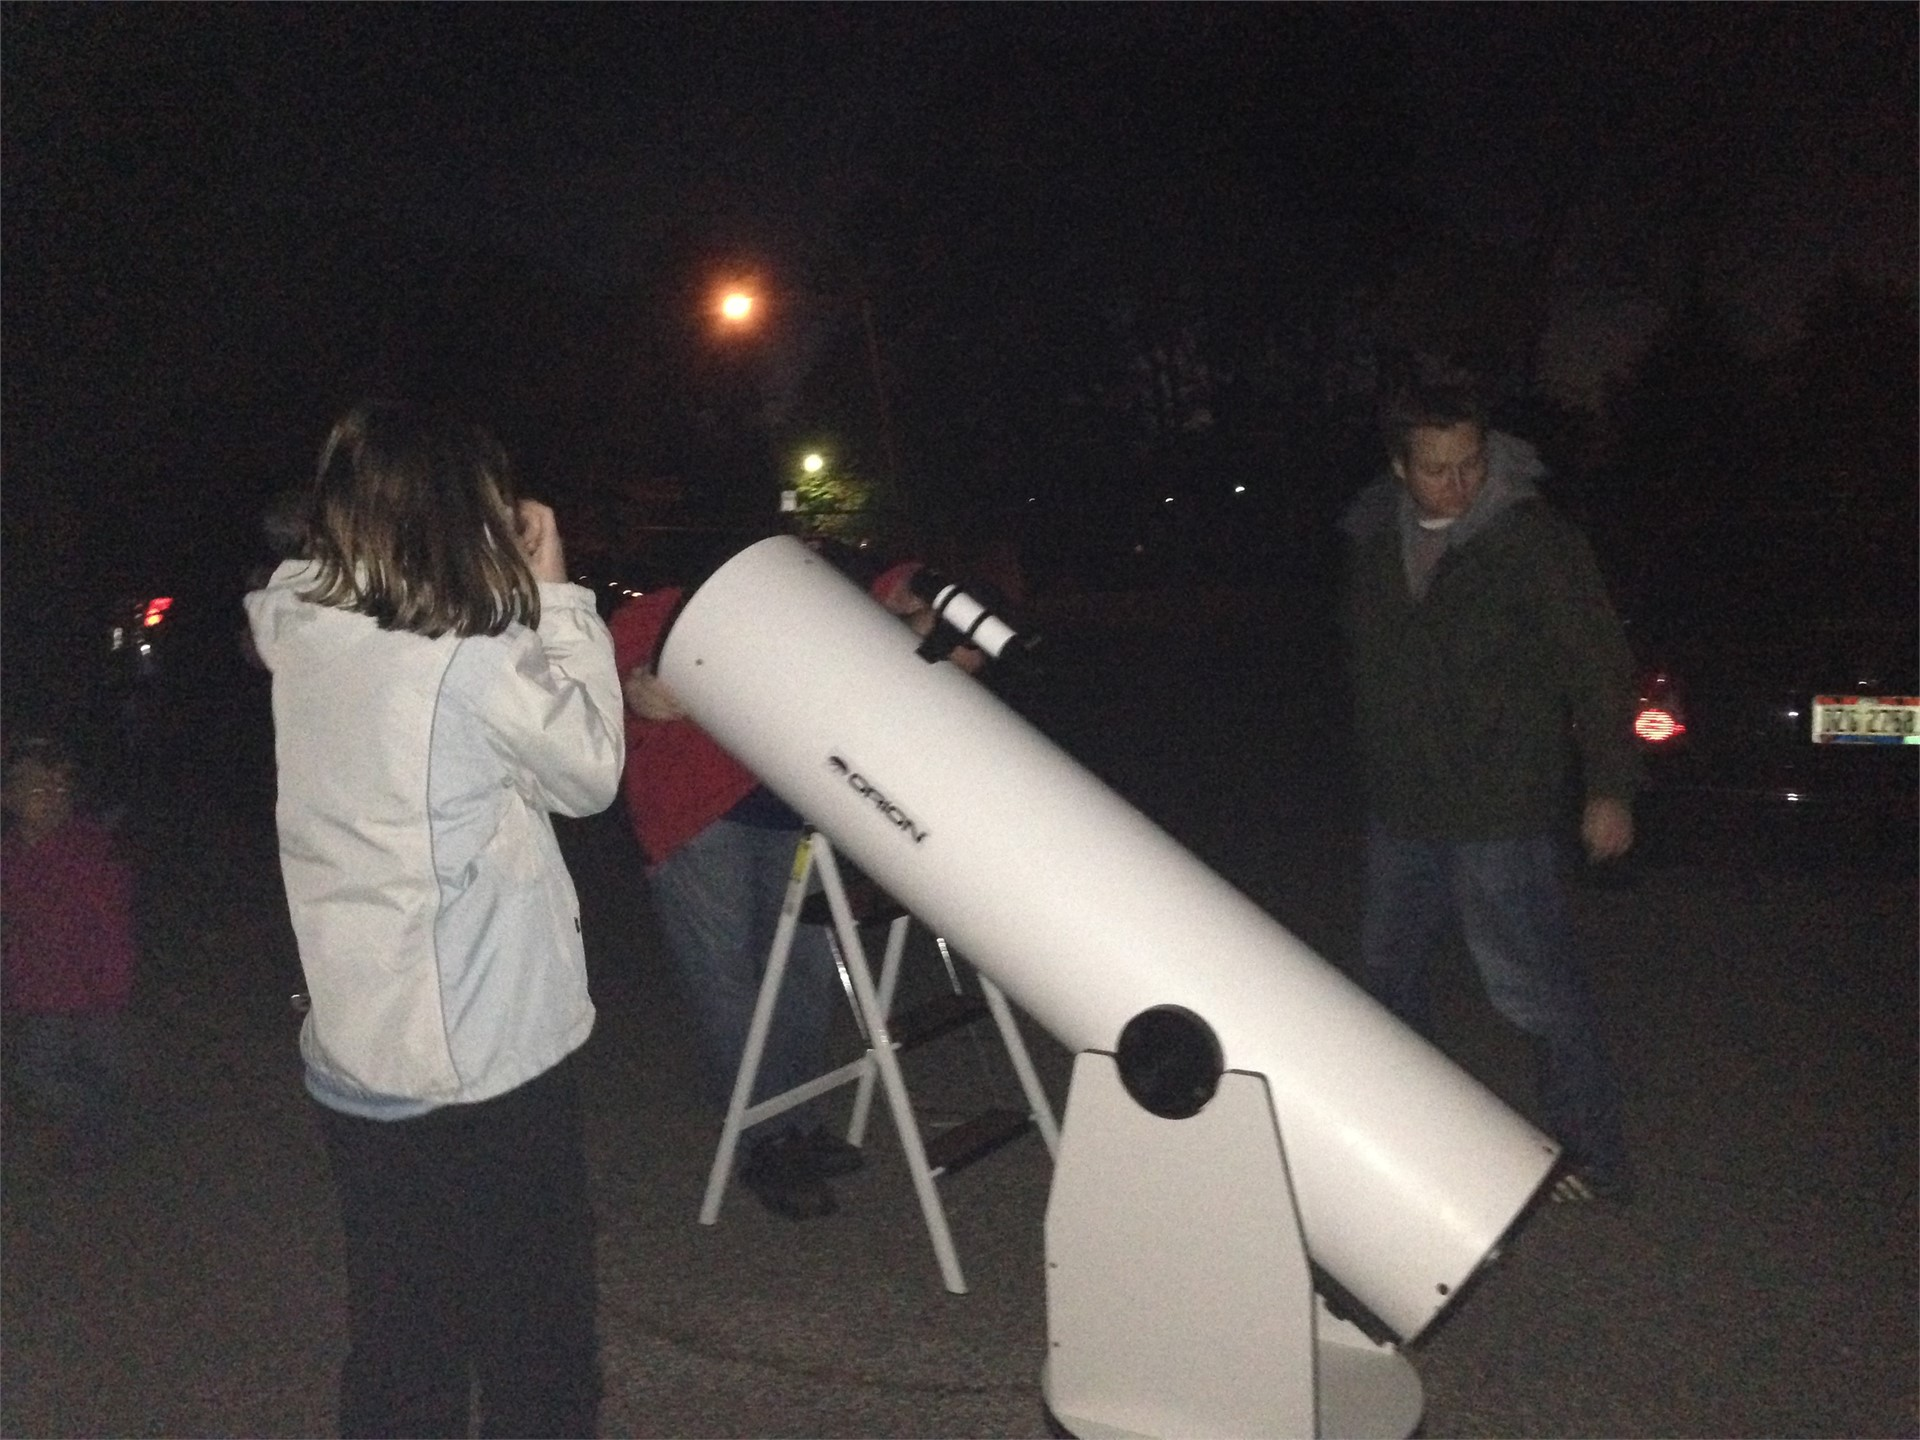 Astronomy Night at MSI